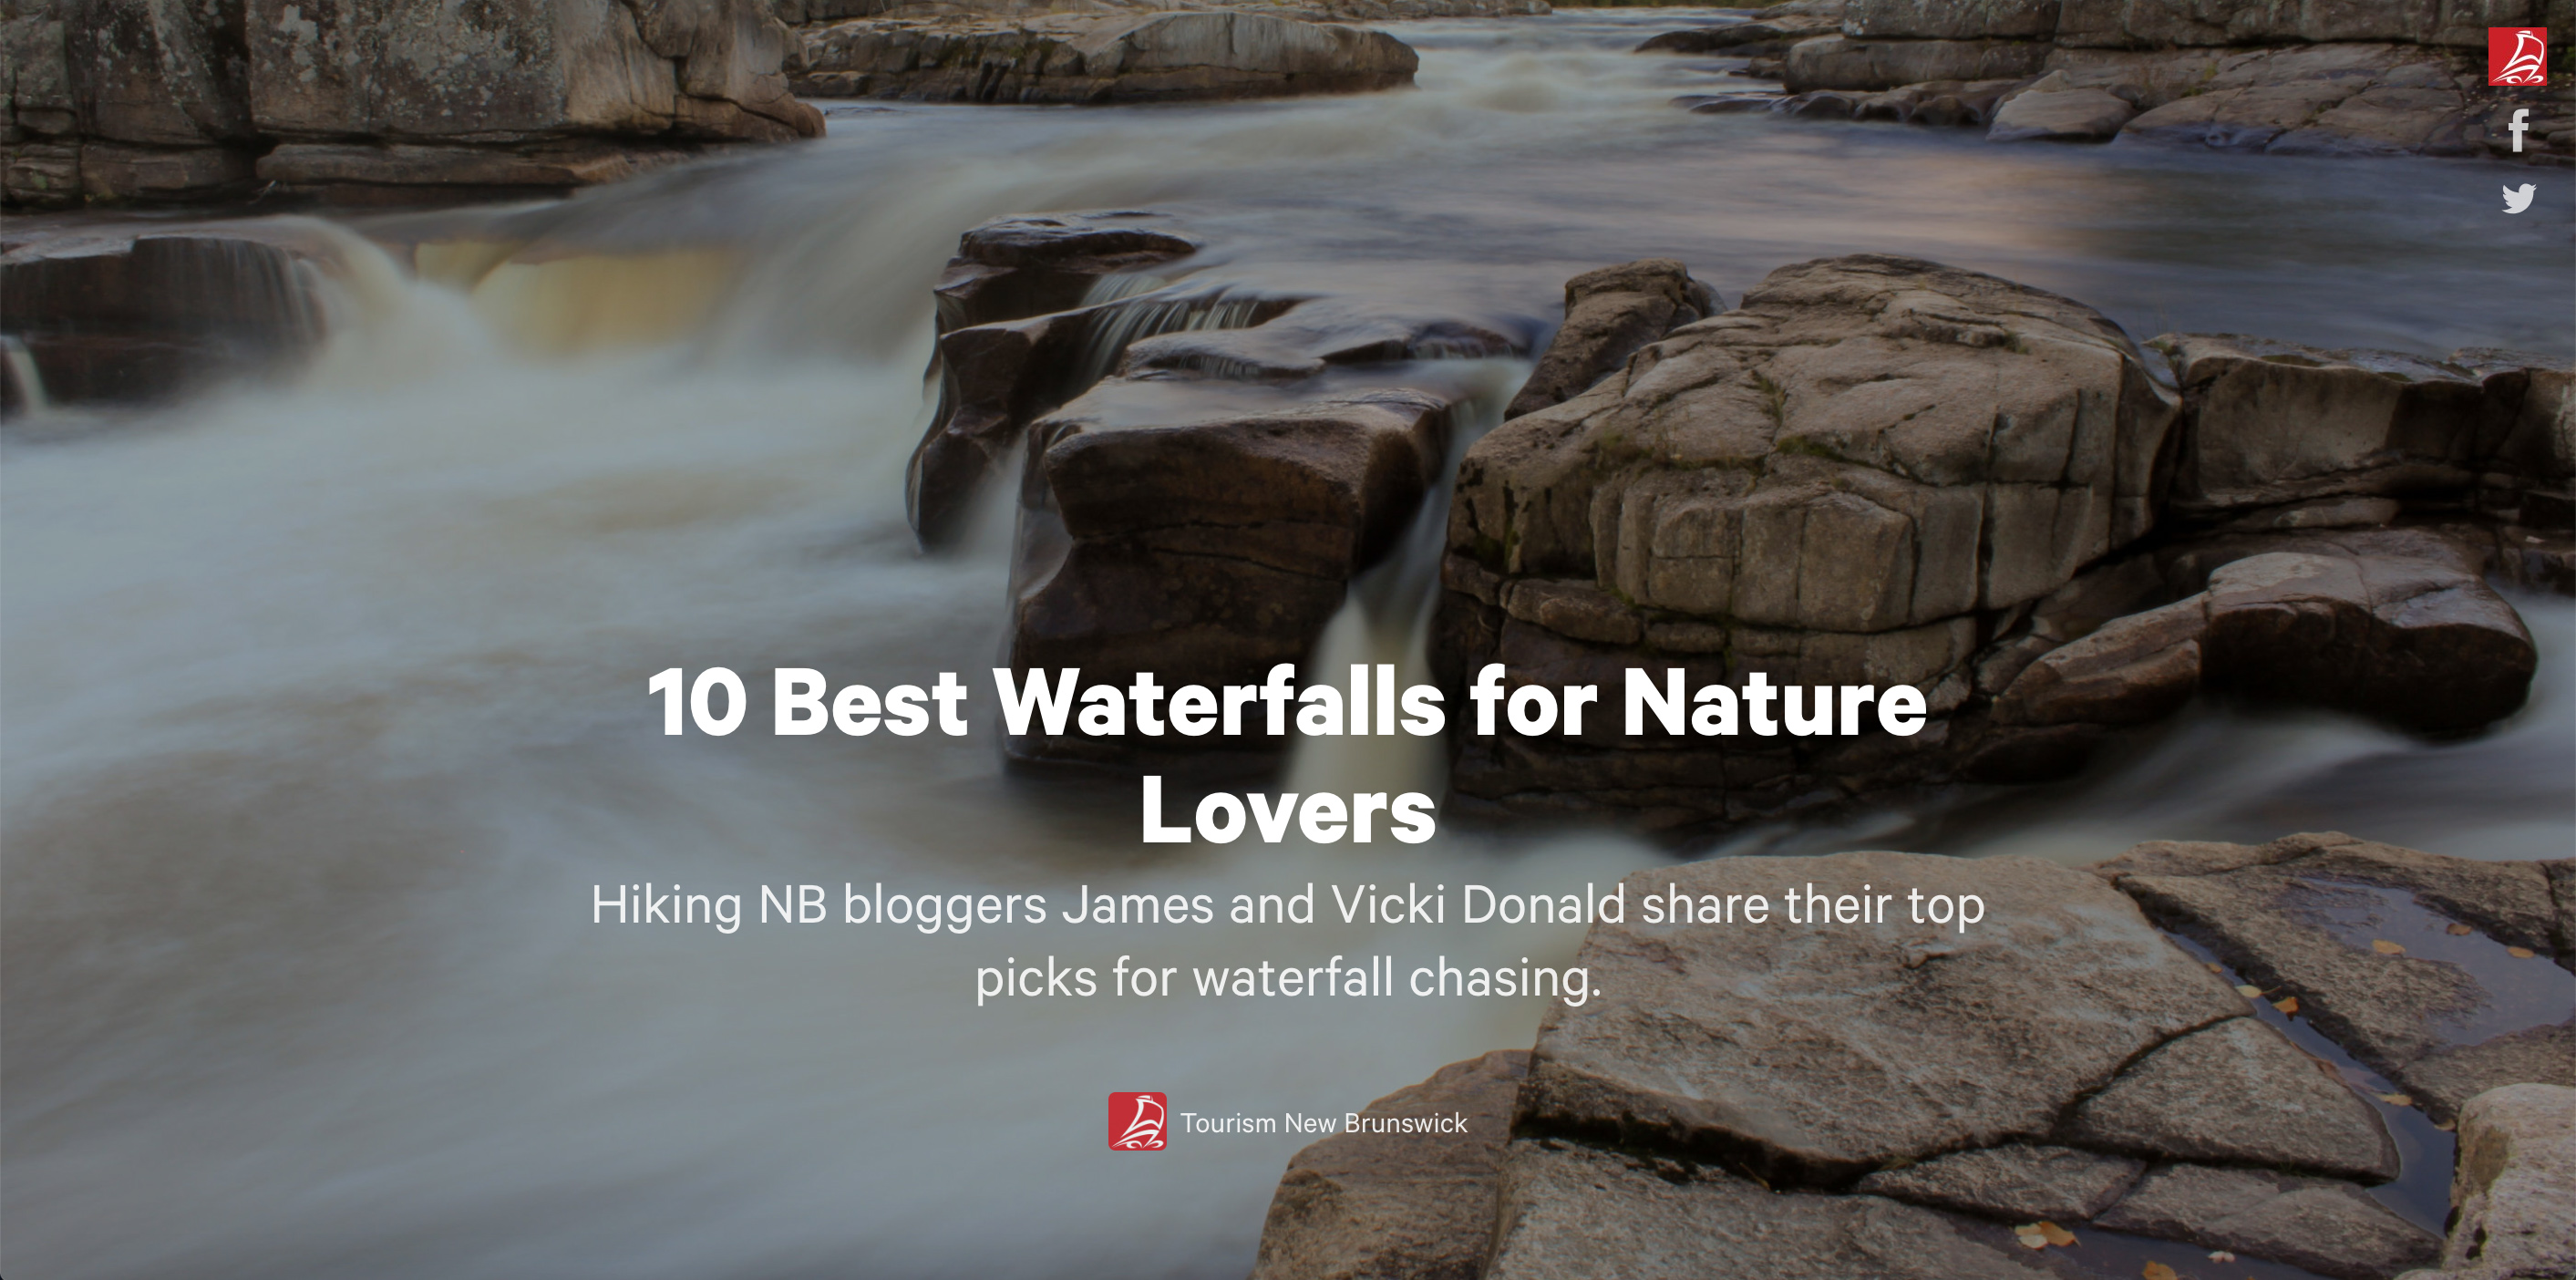 Top 10 Waterfalls Blog Post